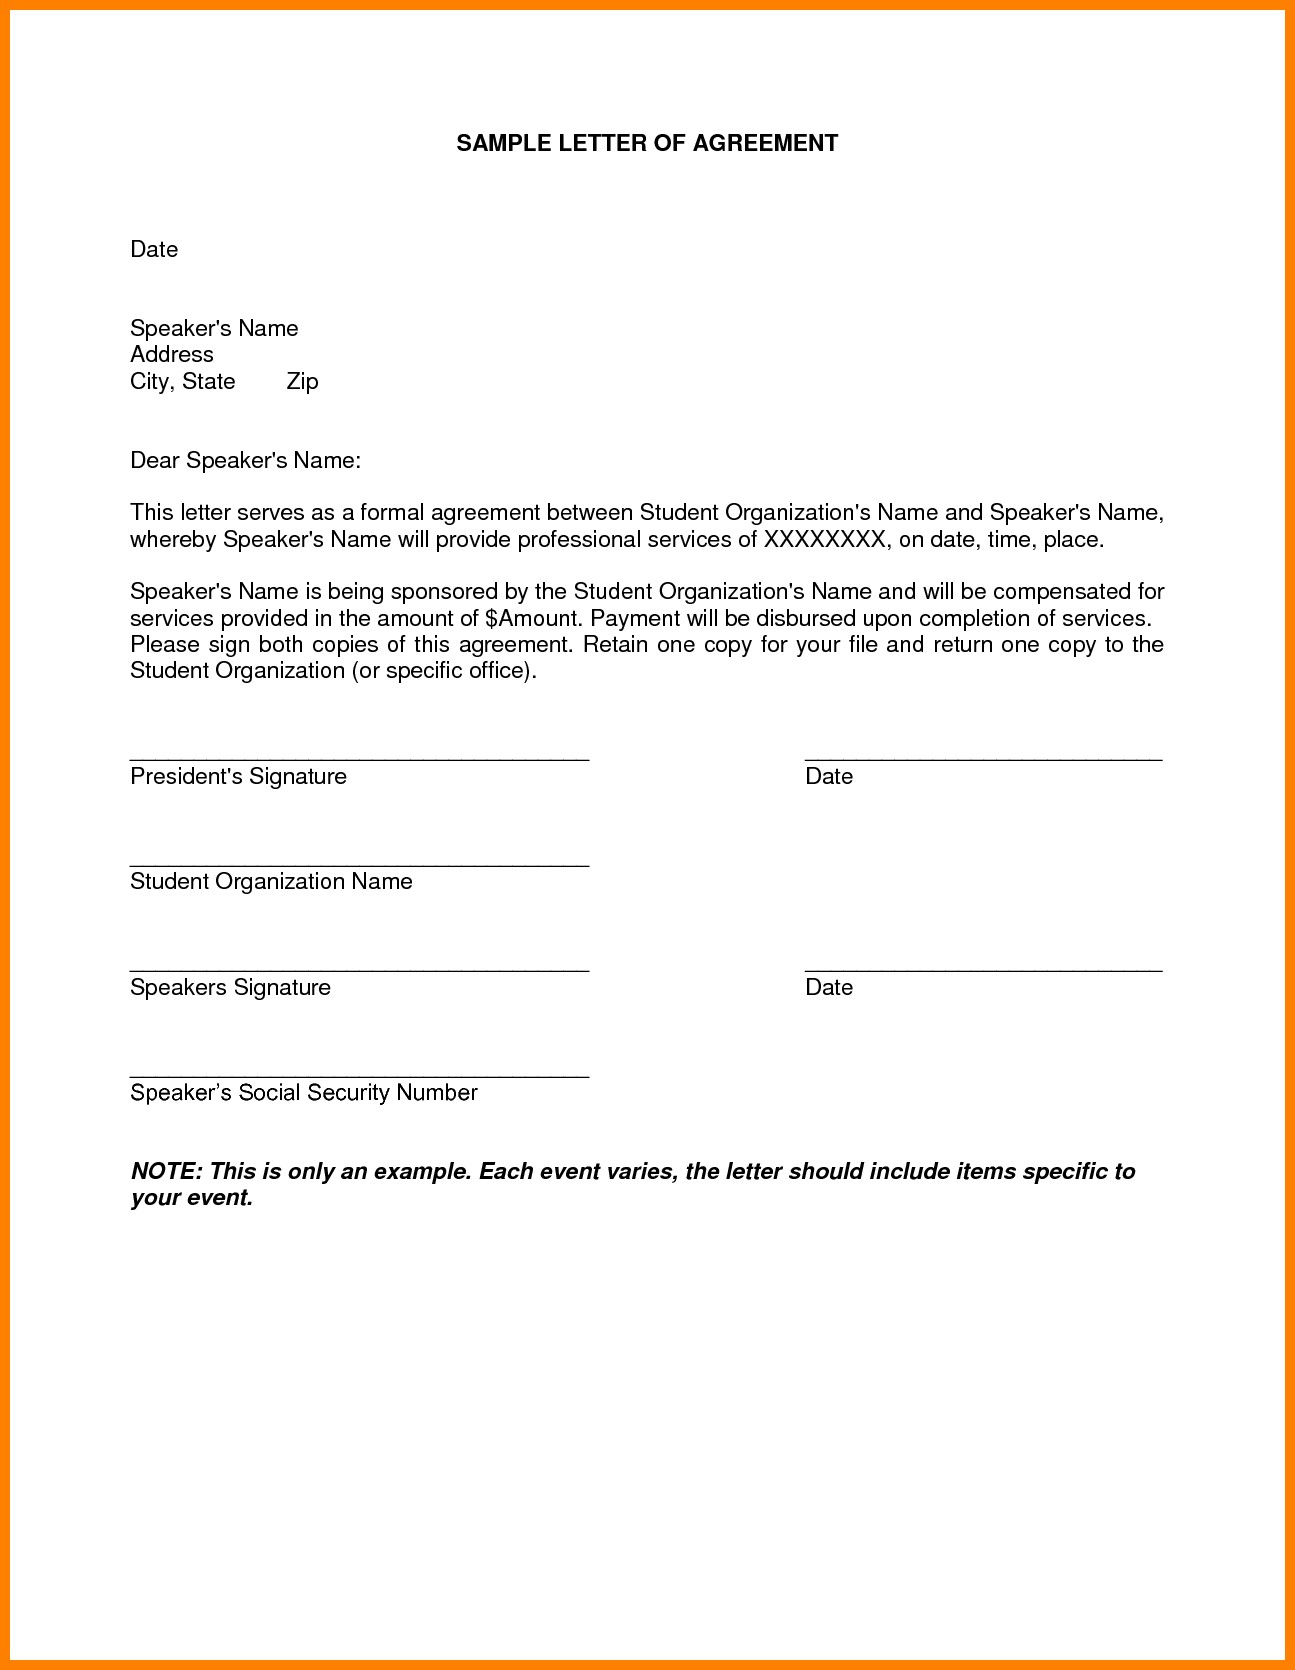 Debt Settlement Agreement Letter Template - Inspiration 9 Best Sample Loan Payoff Letter form Loan Payoff